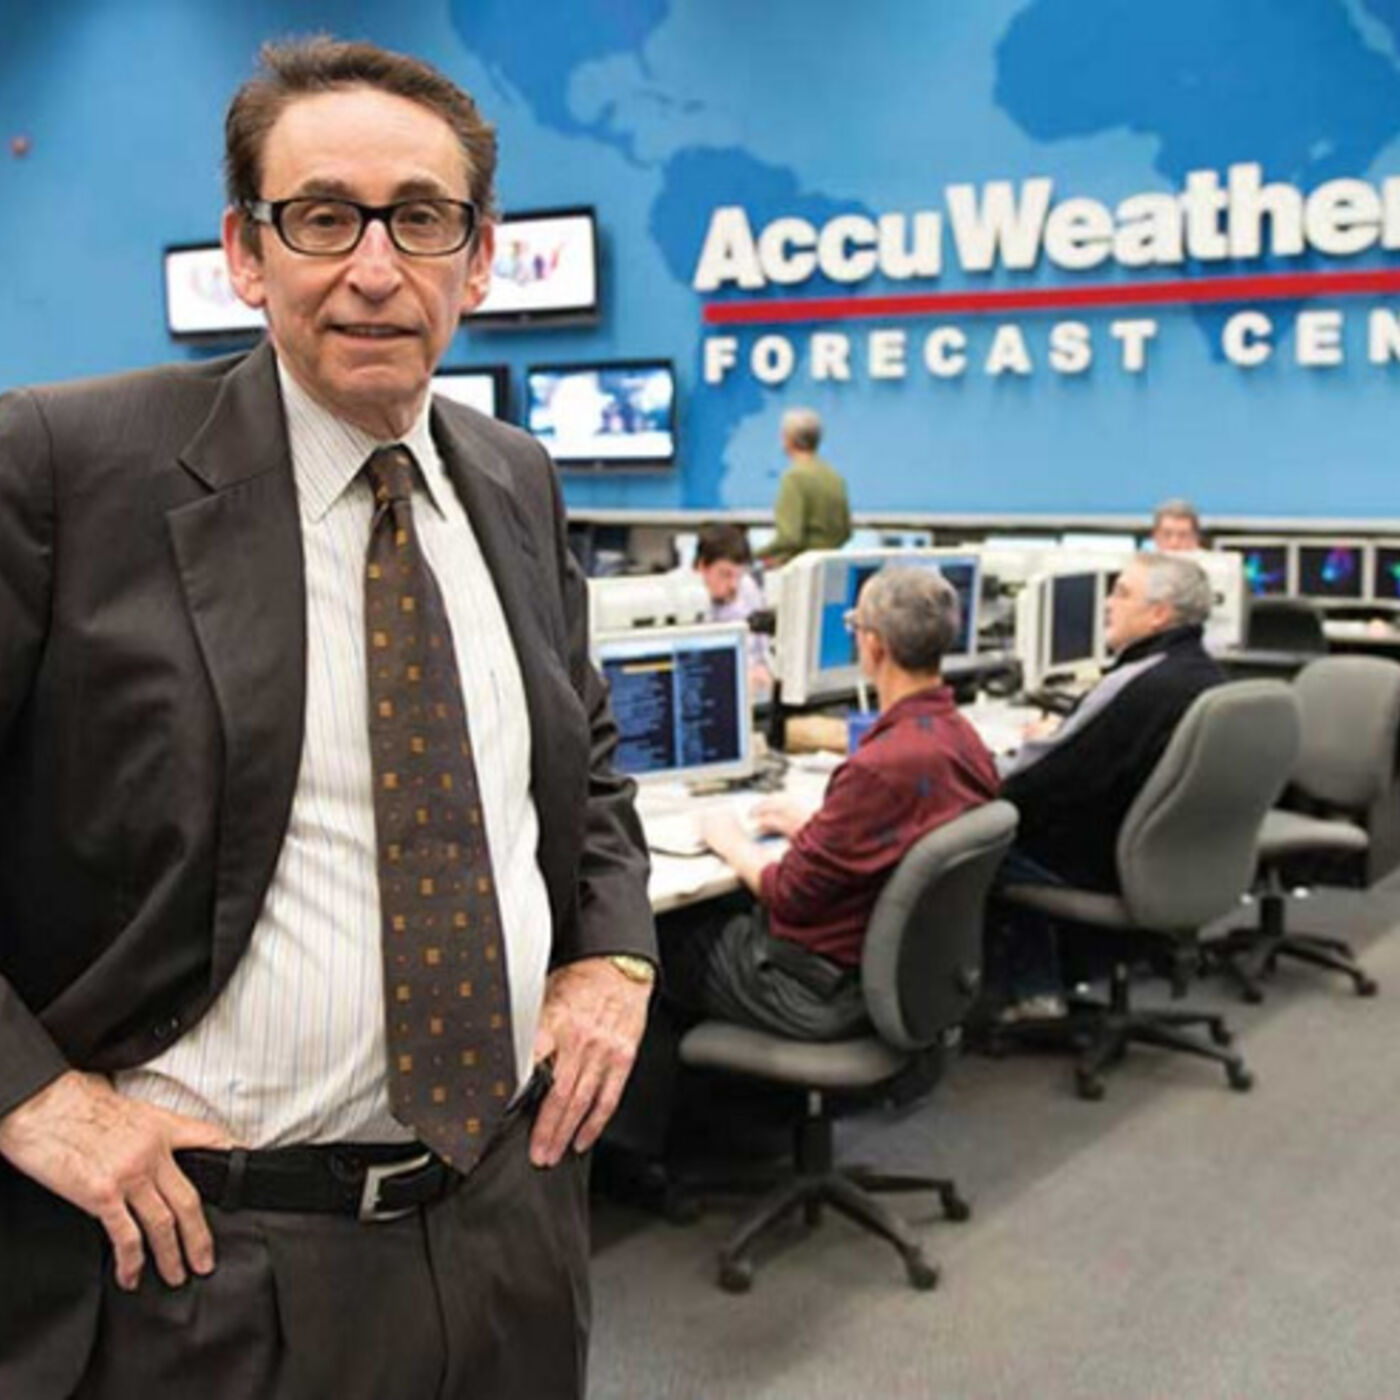 Dr. Joel N Myers of AccuWeather: How has predicting the weather changed?